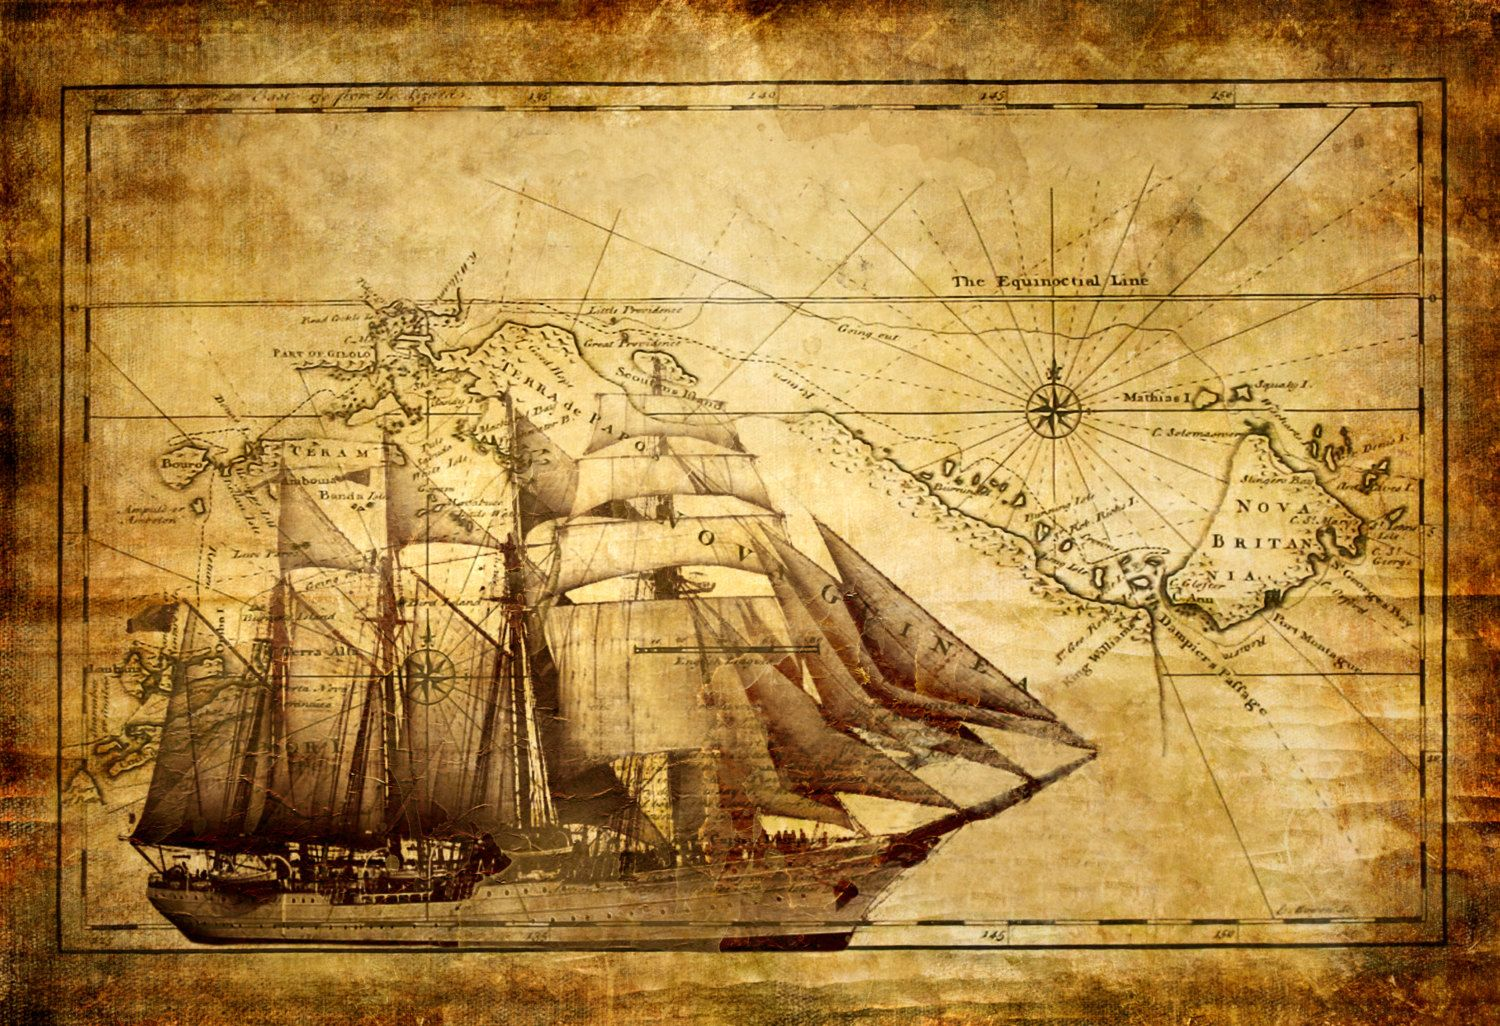 World Map Wall Art Vintage With Ship Canvas Wall Art, Wood Sign, or ...